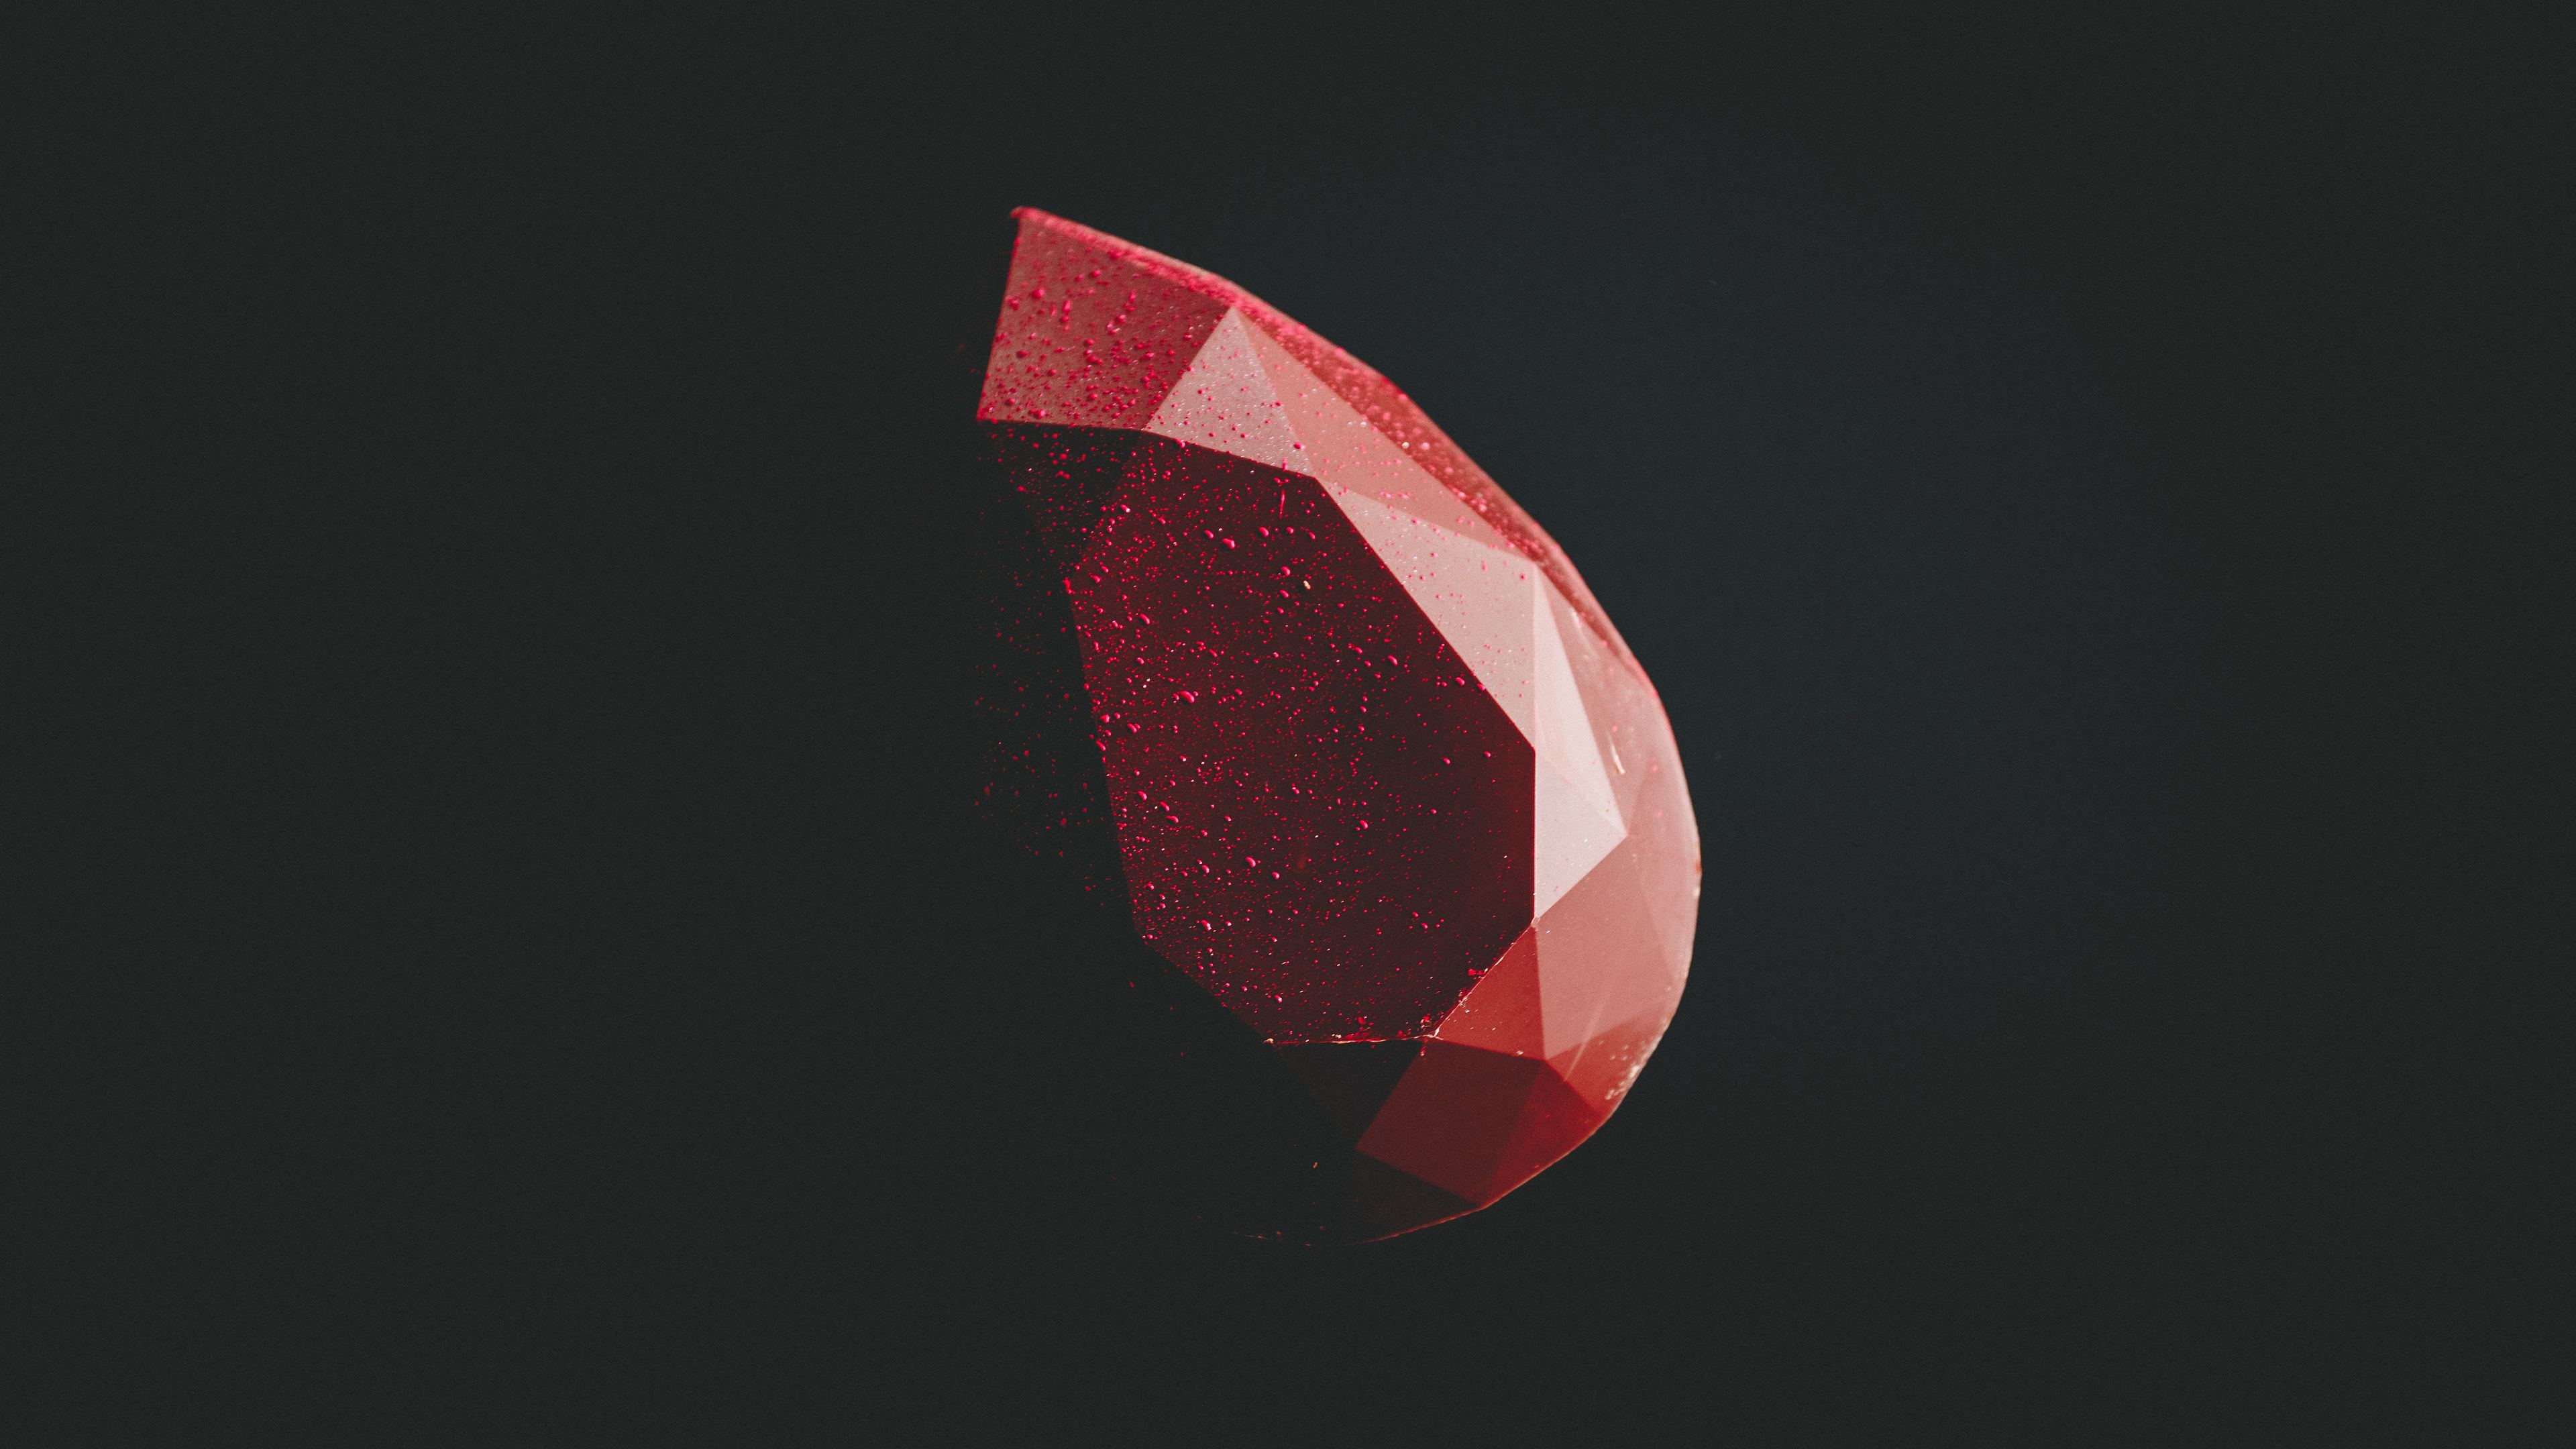 Wallpaper 4k Red Diamond Minimal Dark 5k 4k Wallpapers 5k